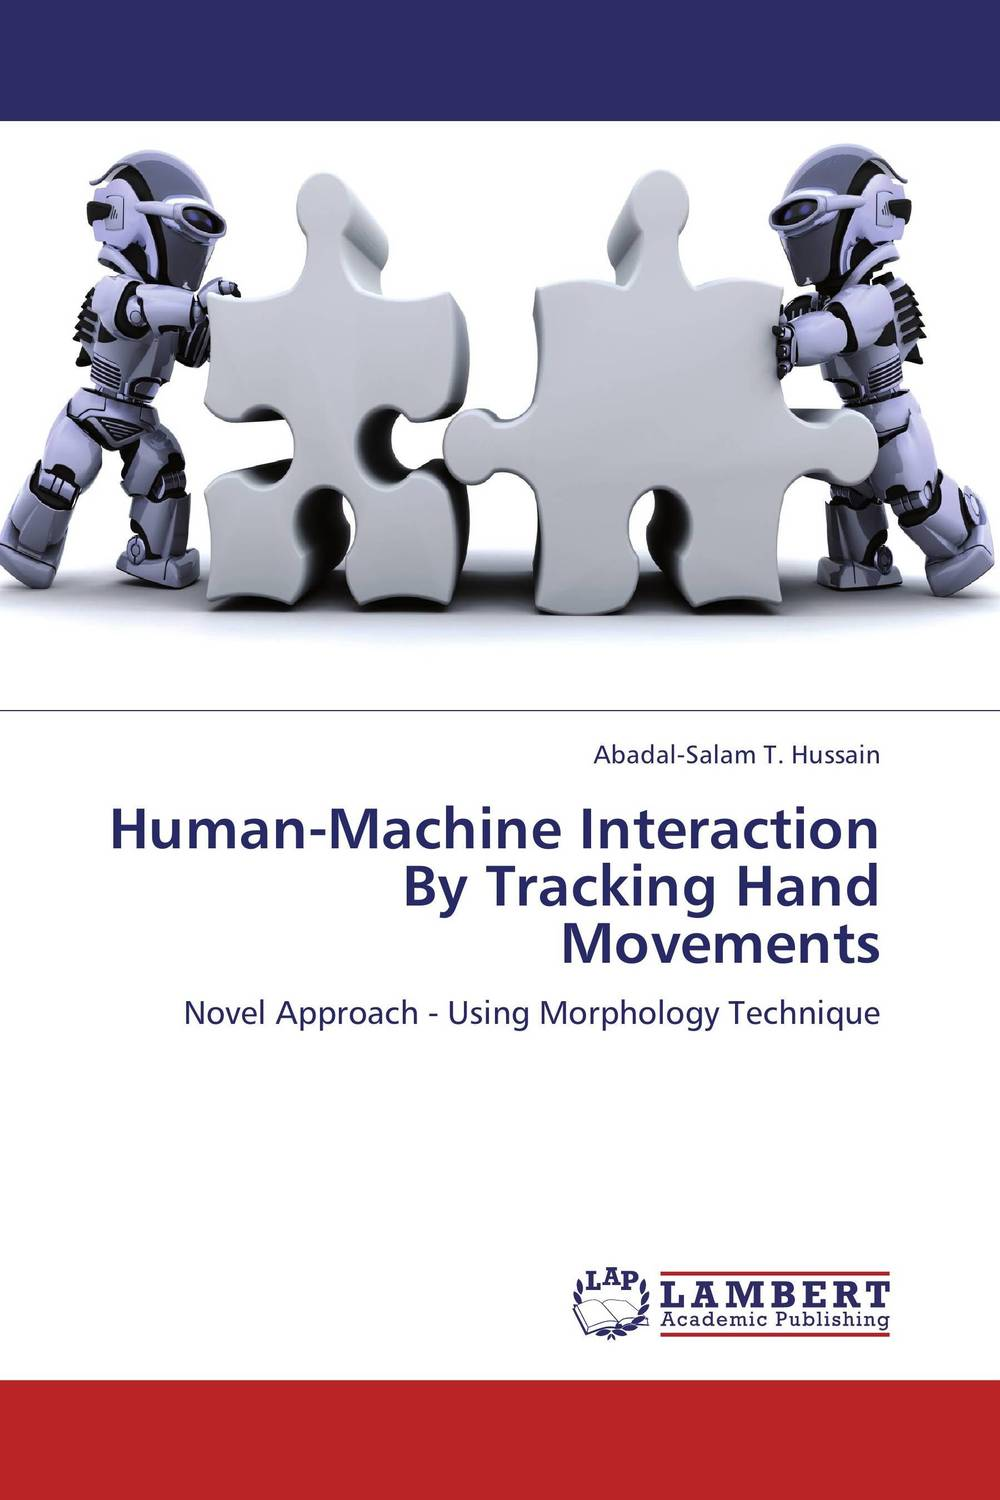 Human-Machine Interaction By Tracking Hand Movements mems computer vision and robotic manipulation system